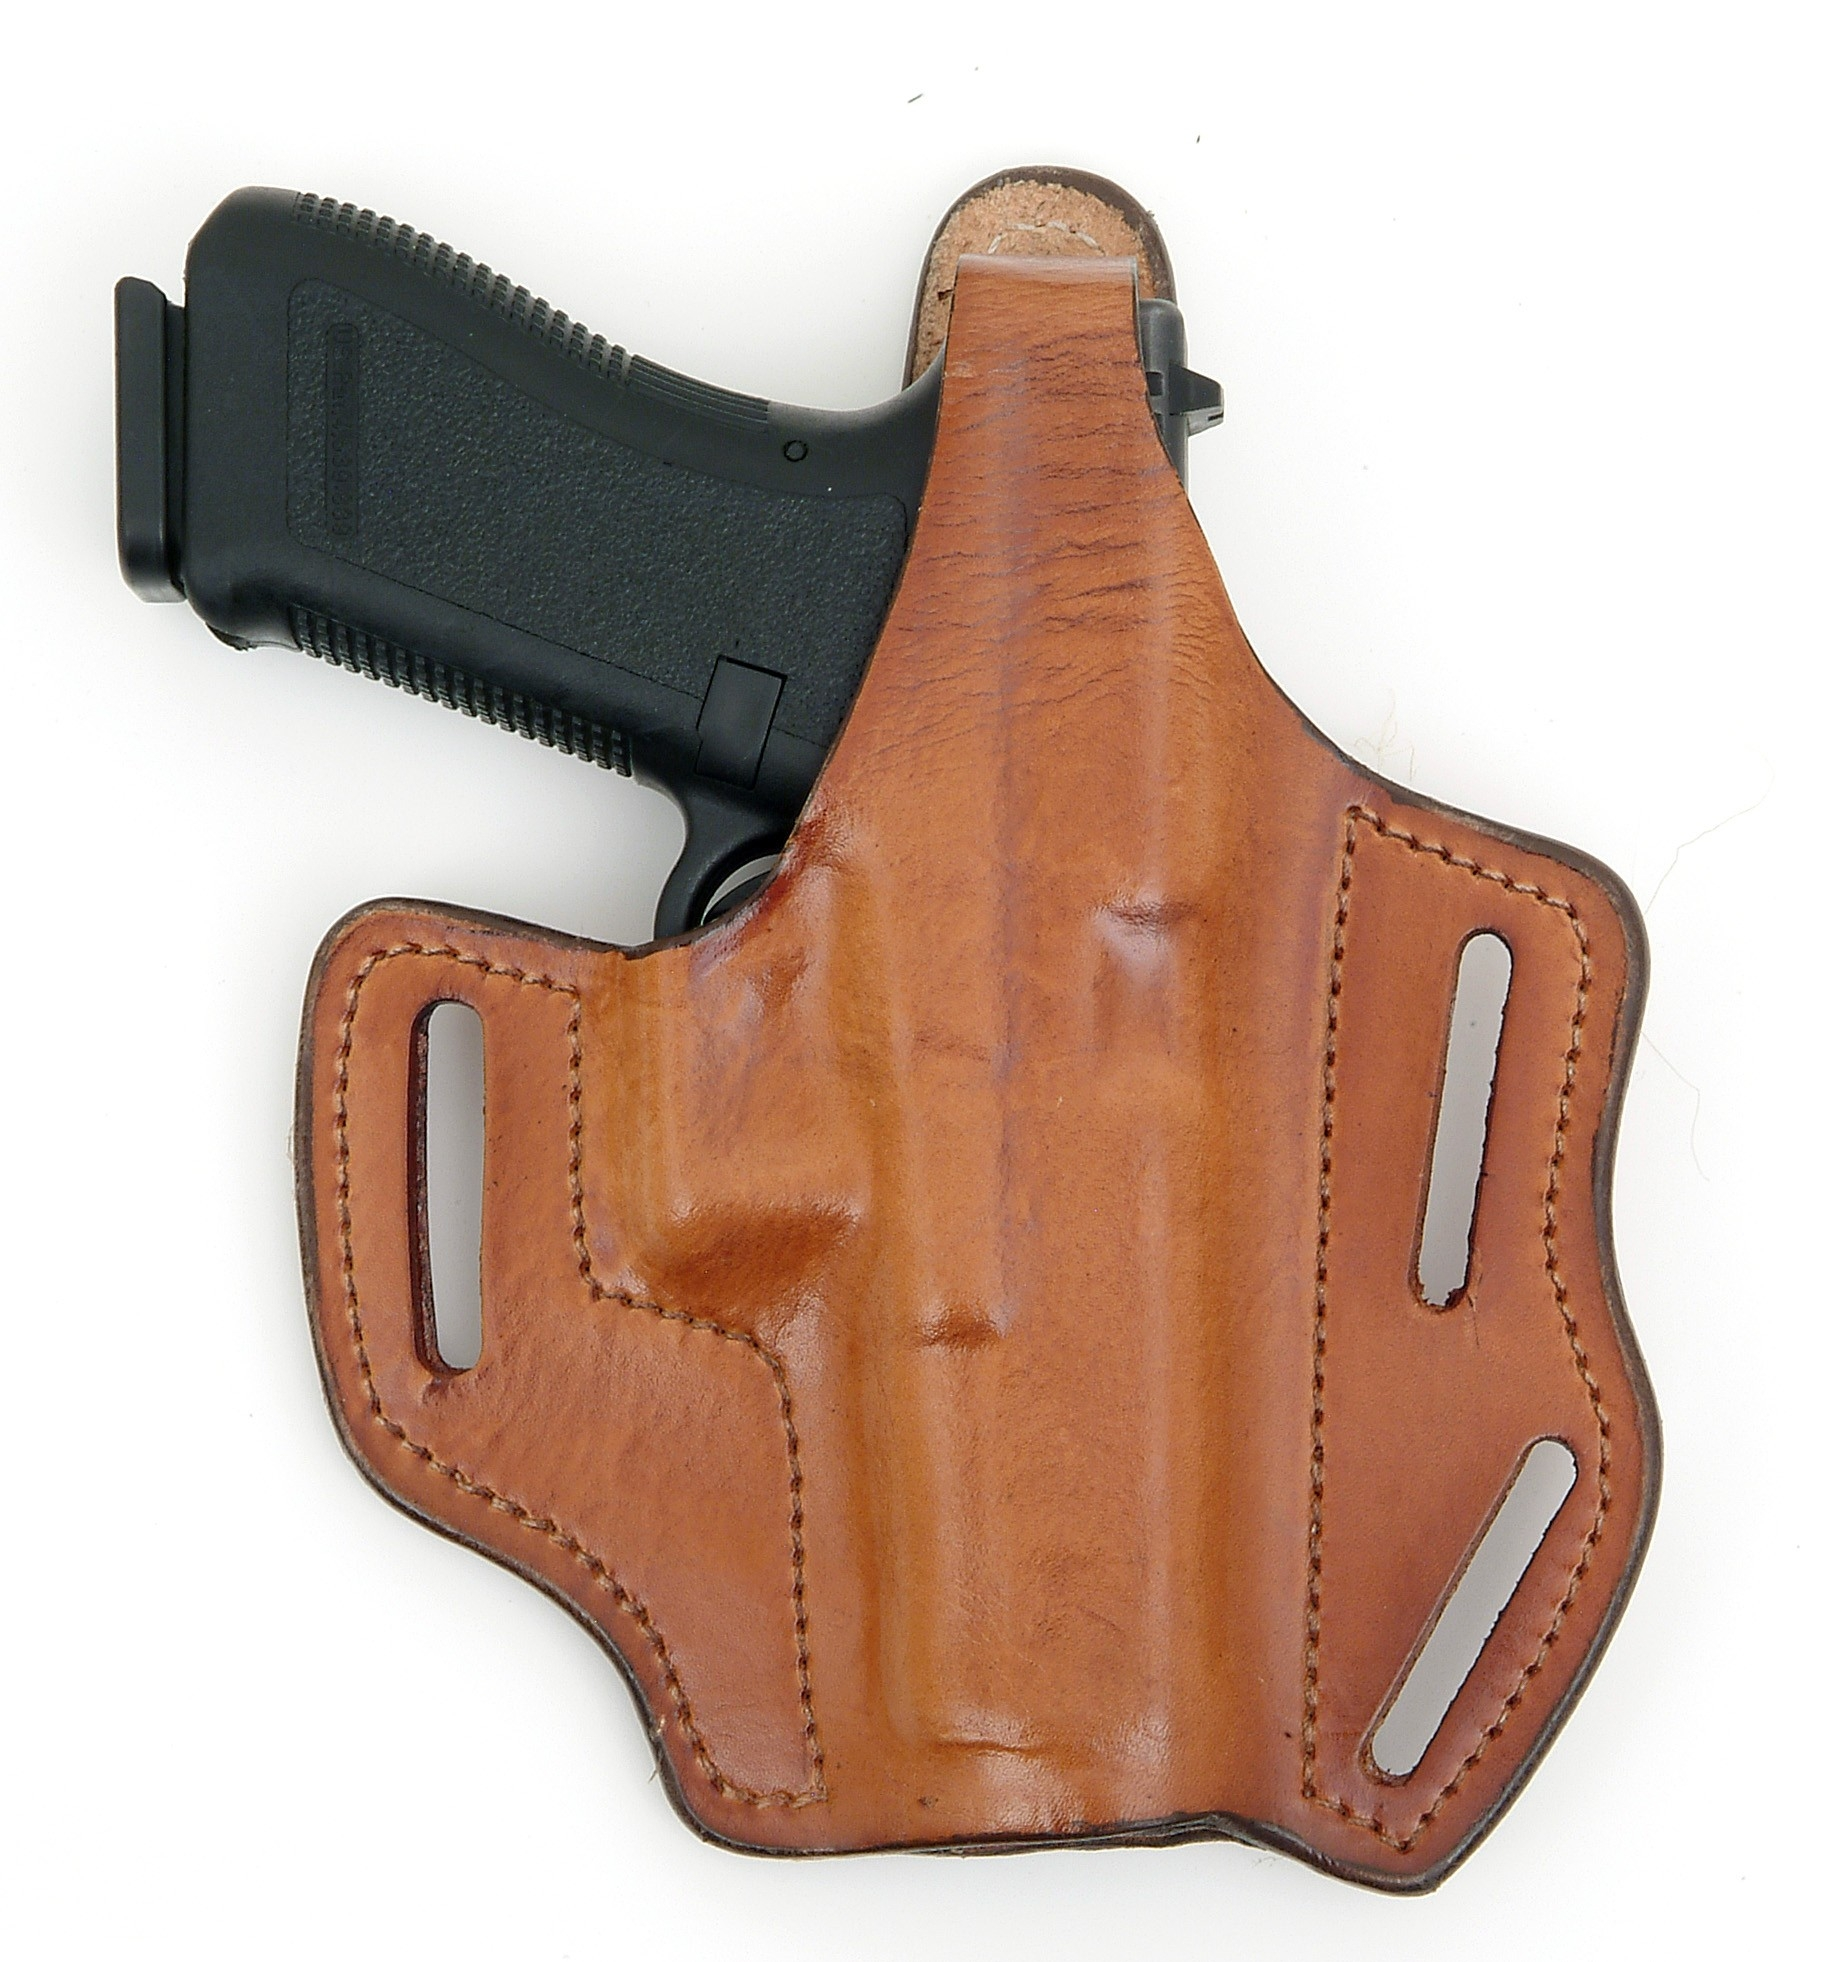 IWB Gun Holsters: Buy Premium Inside Waistband Holsters